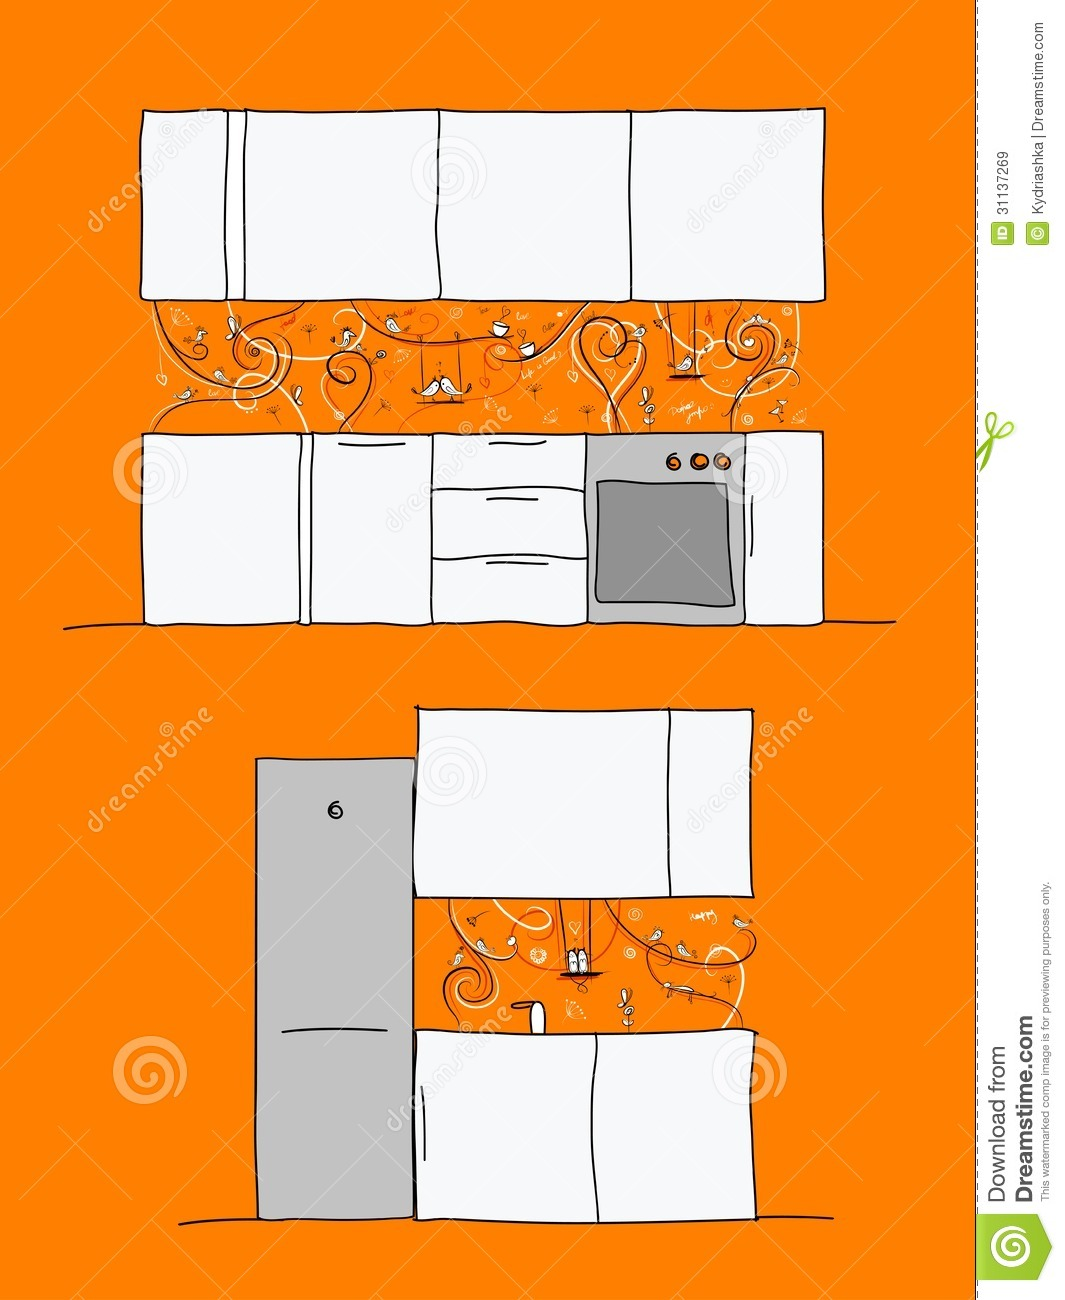 Kitchen Wall Design Of Kitchen Wall With Funny Birds And Cats Royalty Free